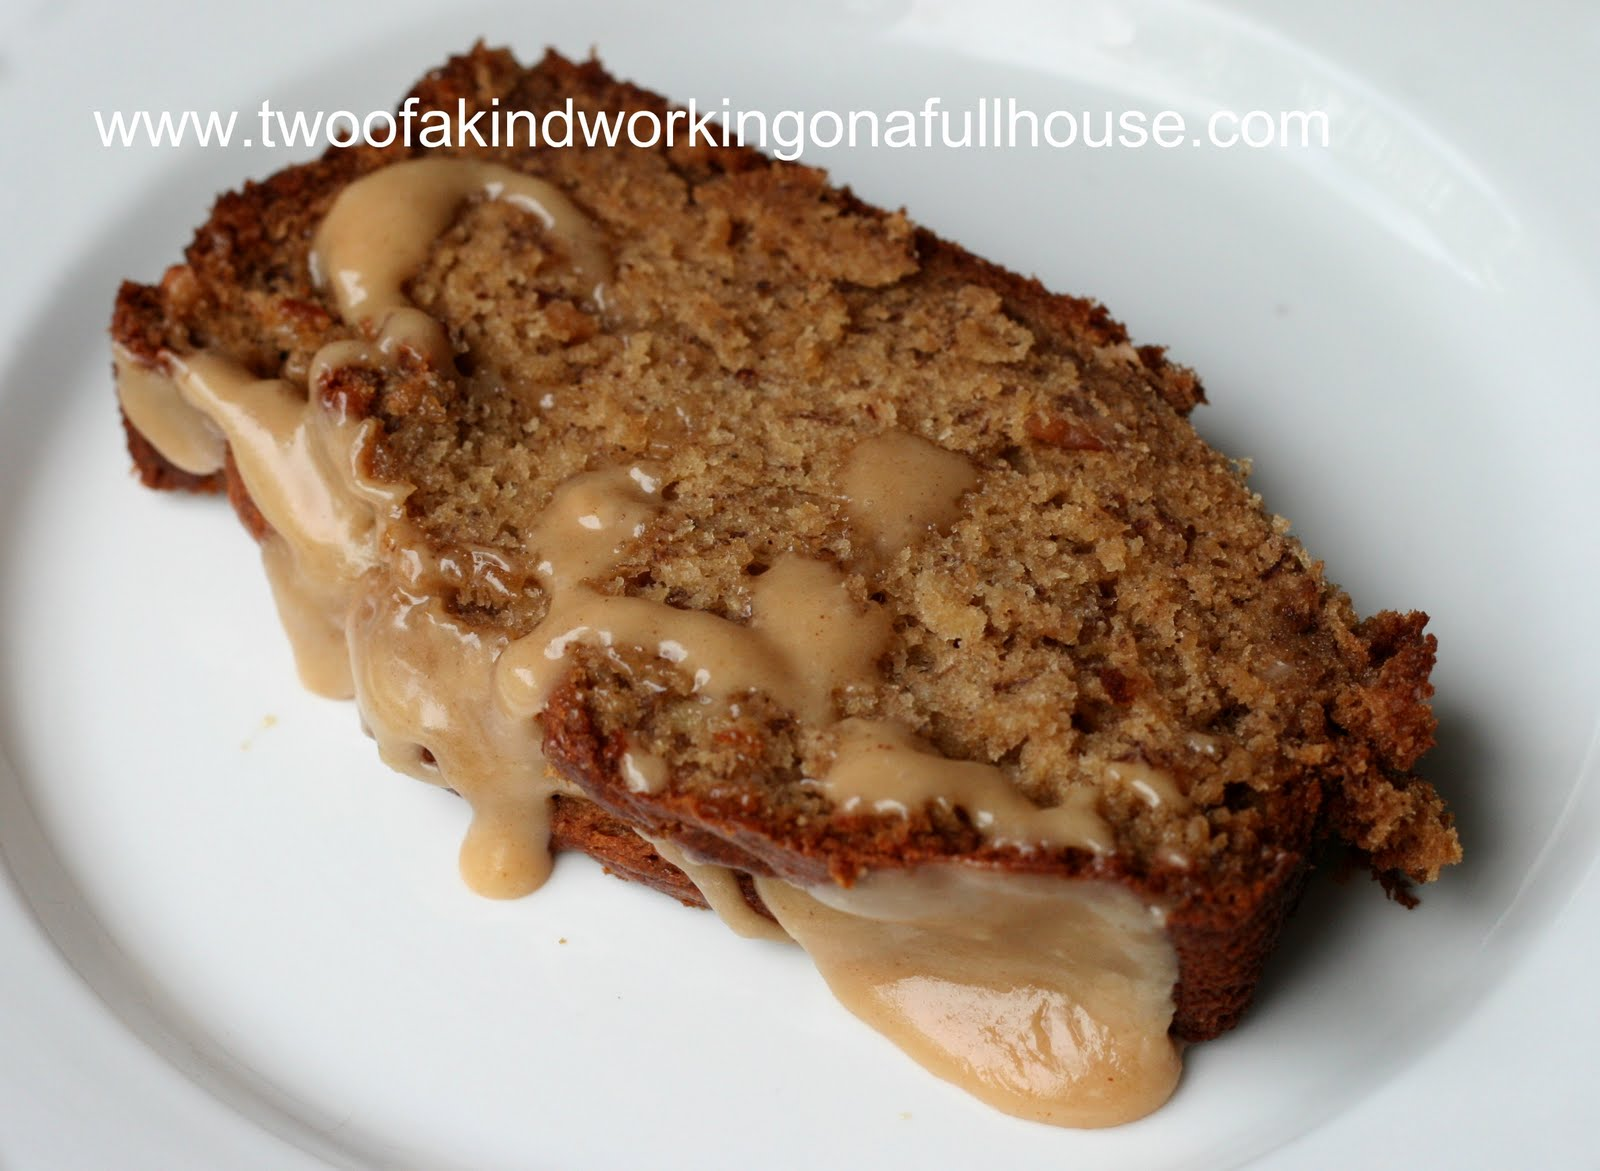 Peanut Butter Banana Bread Recipe | Two of a kind, working on a full ...